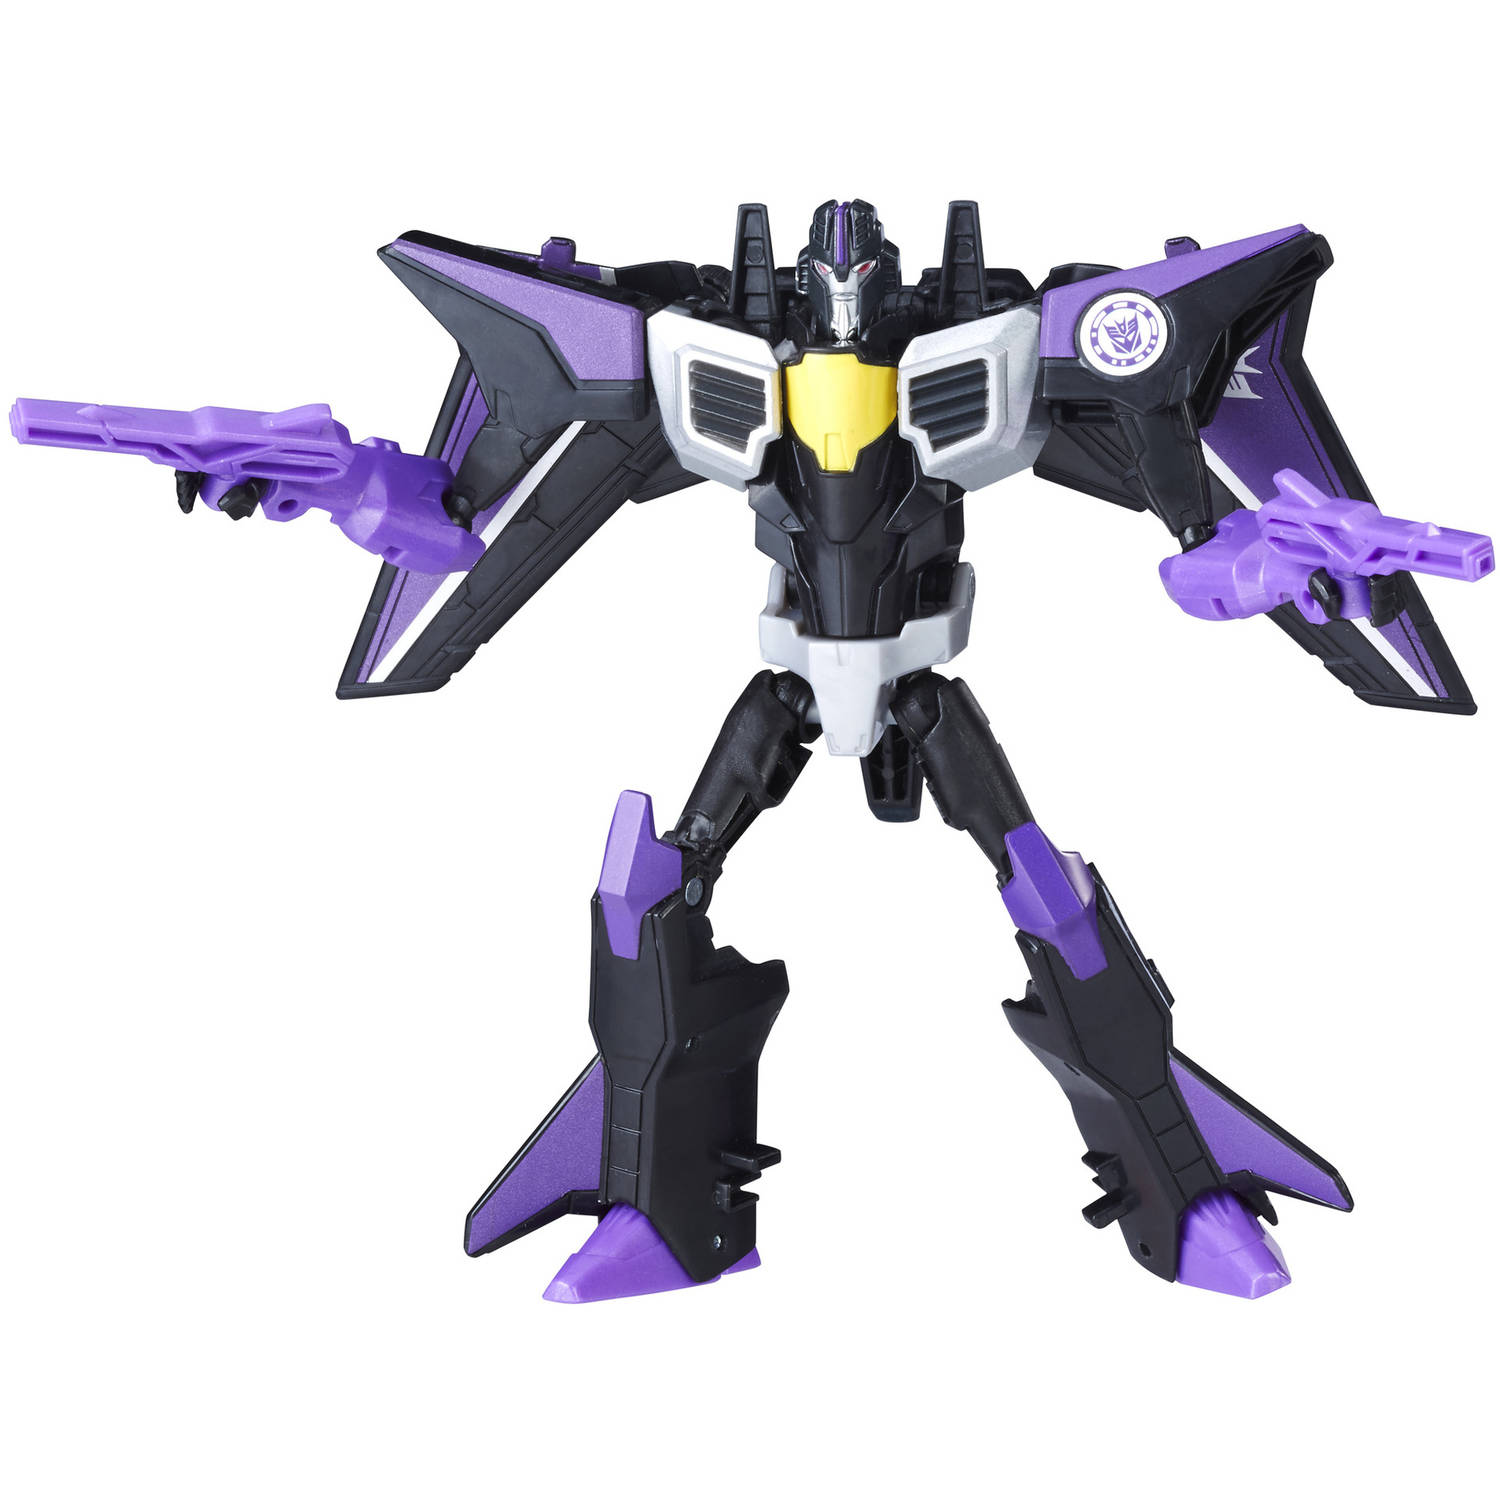 Transformers: Robots in Disguise Combiner Force Warriors Class Skywarp by Hasbro